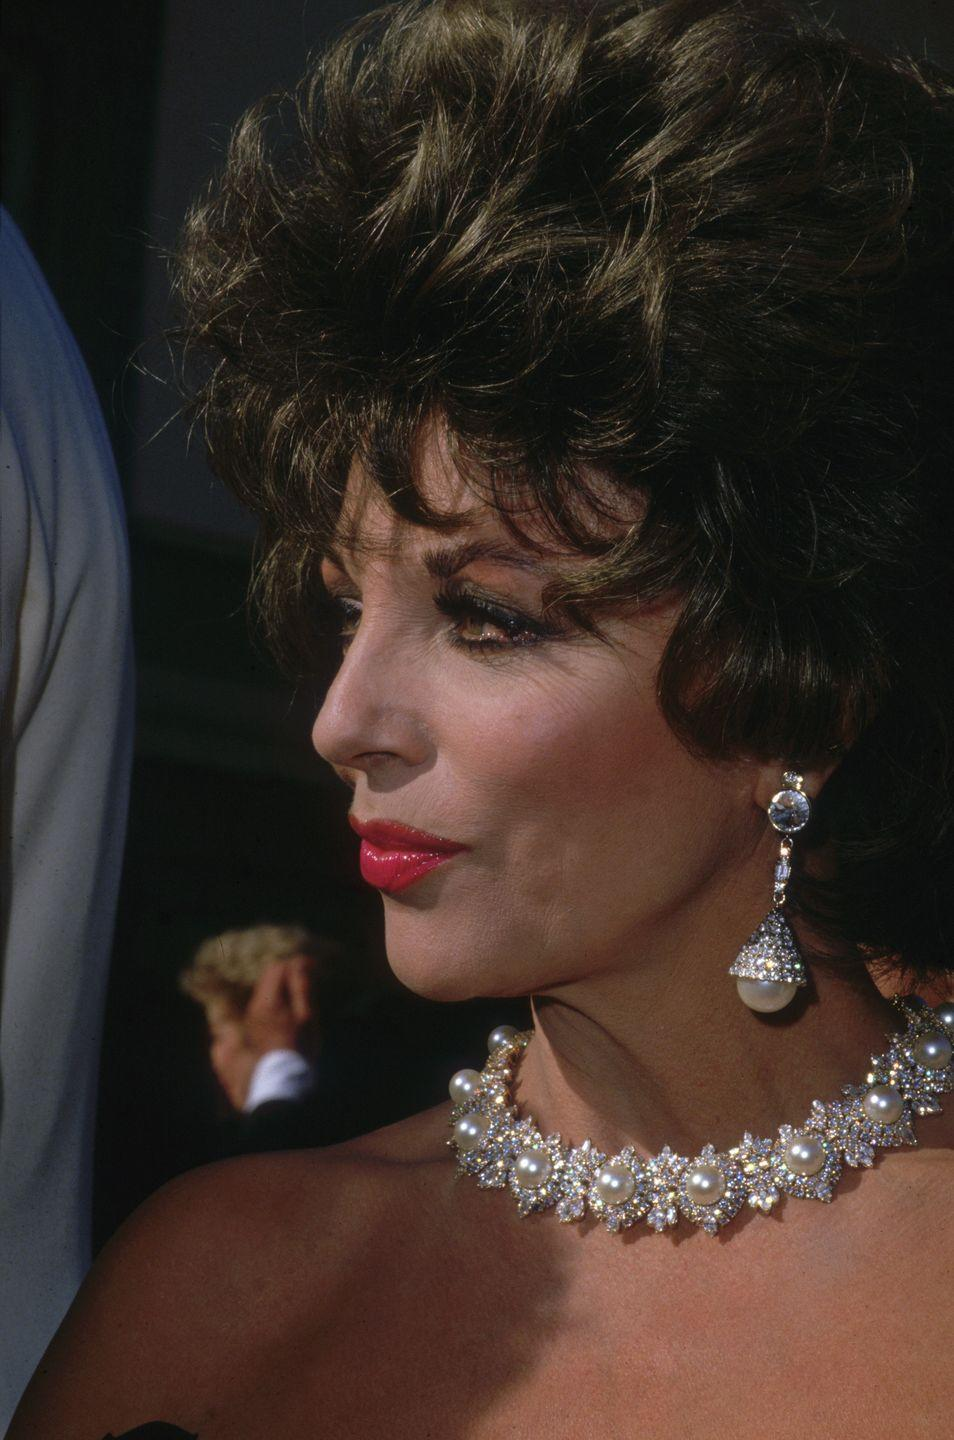 <p>This was the year that Dynasty finally beat rival drama Dallas to the top of the US television ratings, and Collins celebrated on the red carpet in suitably theatrical pearls and diamonds. </p>